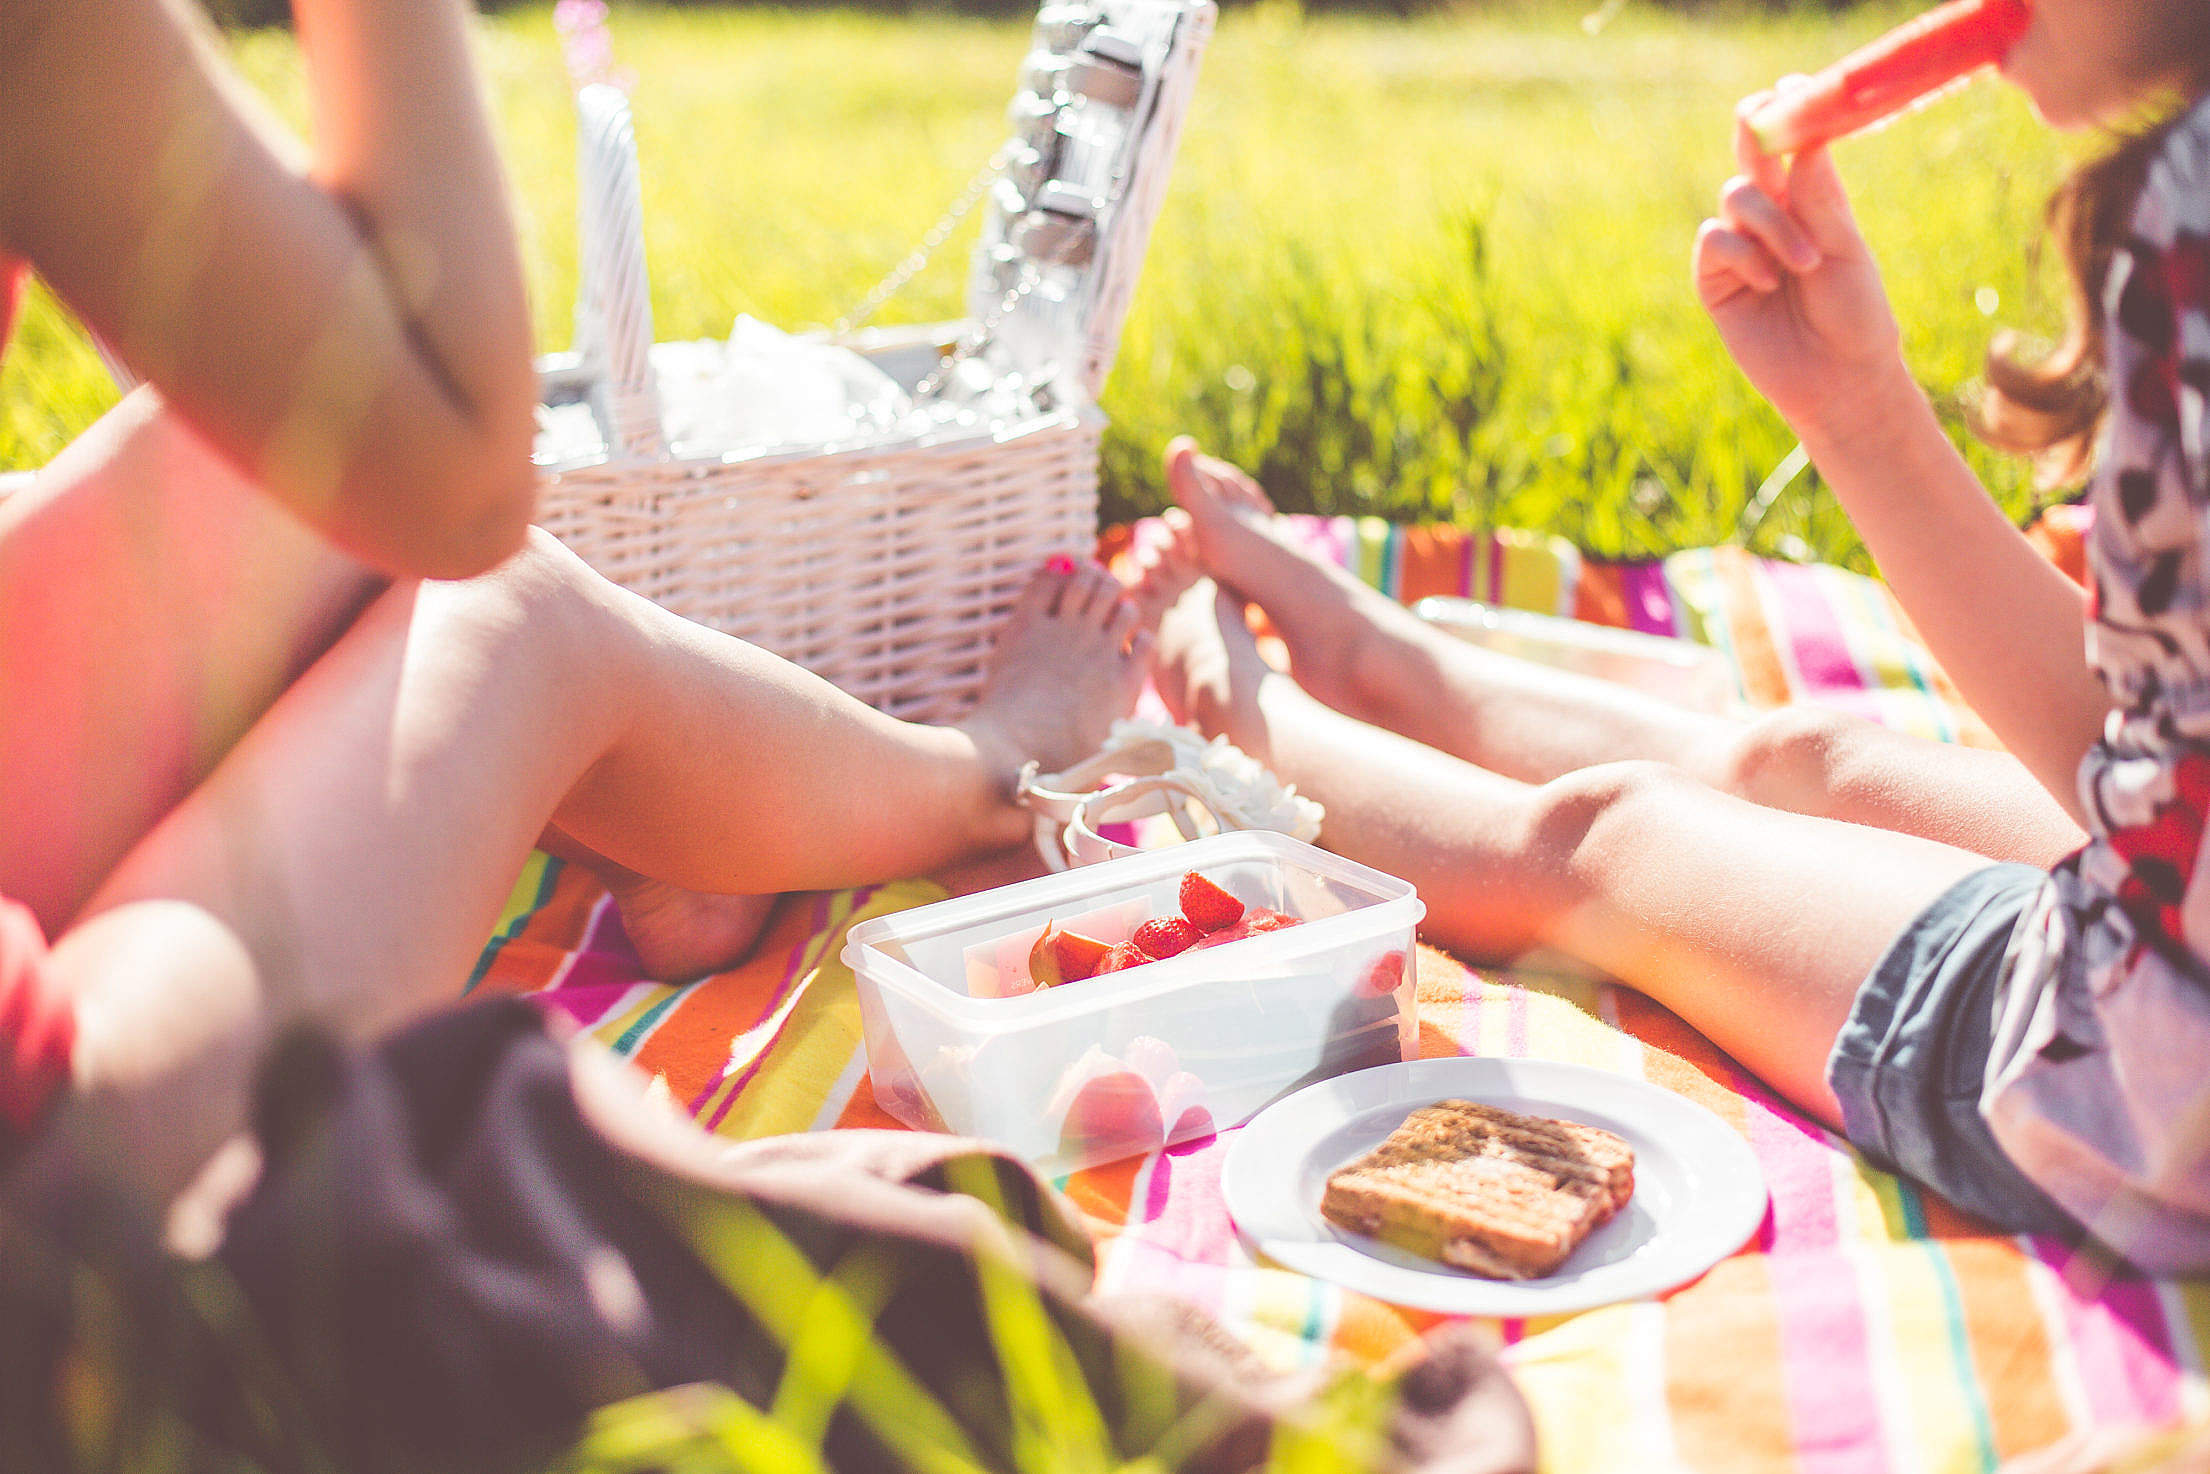 Two Girls Enjoying First Summer Picnic in Nature Free Stock Photo